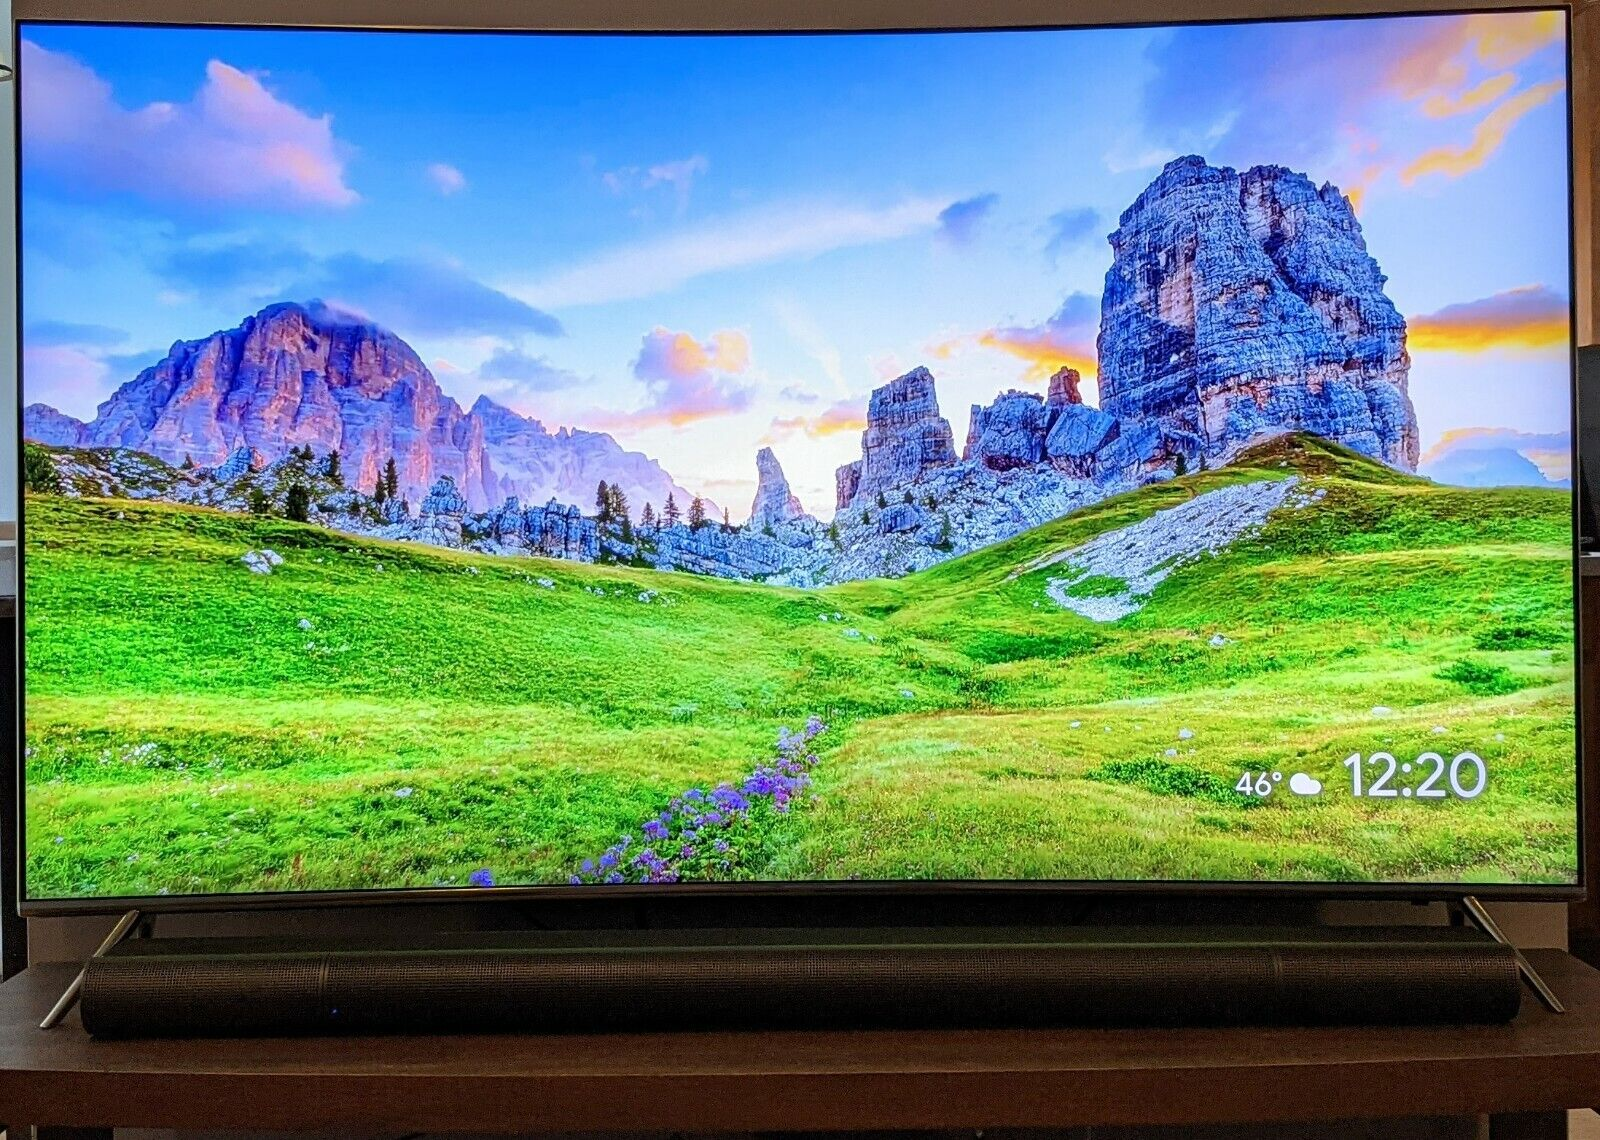 Samsung UN65KS8500 65 4K HDR 2160p SUHD Quantum Dot Curved LED TV. Available Now for 799.99